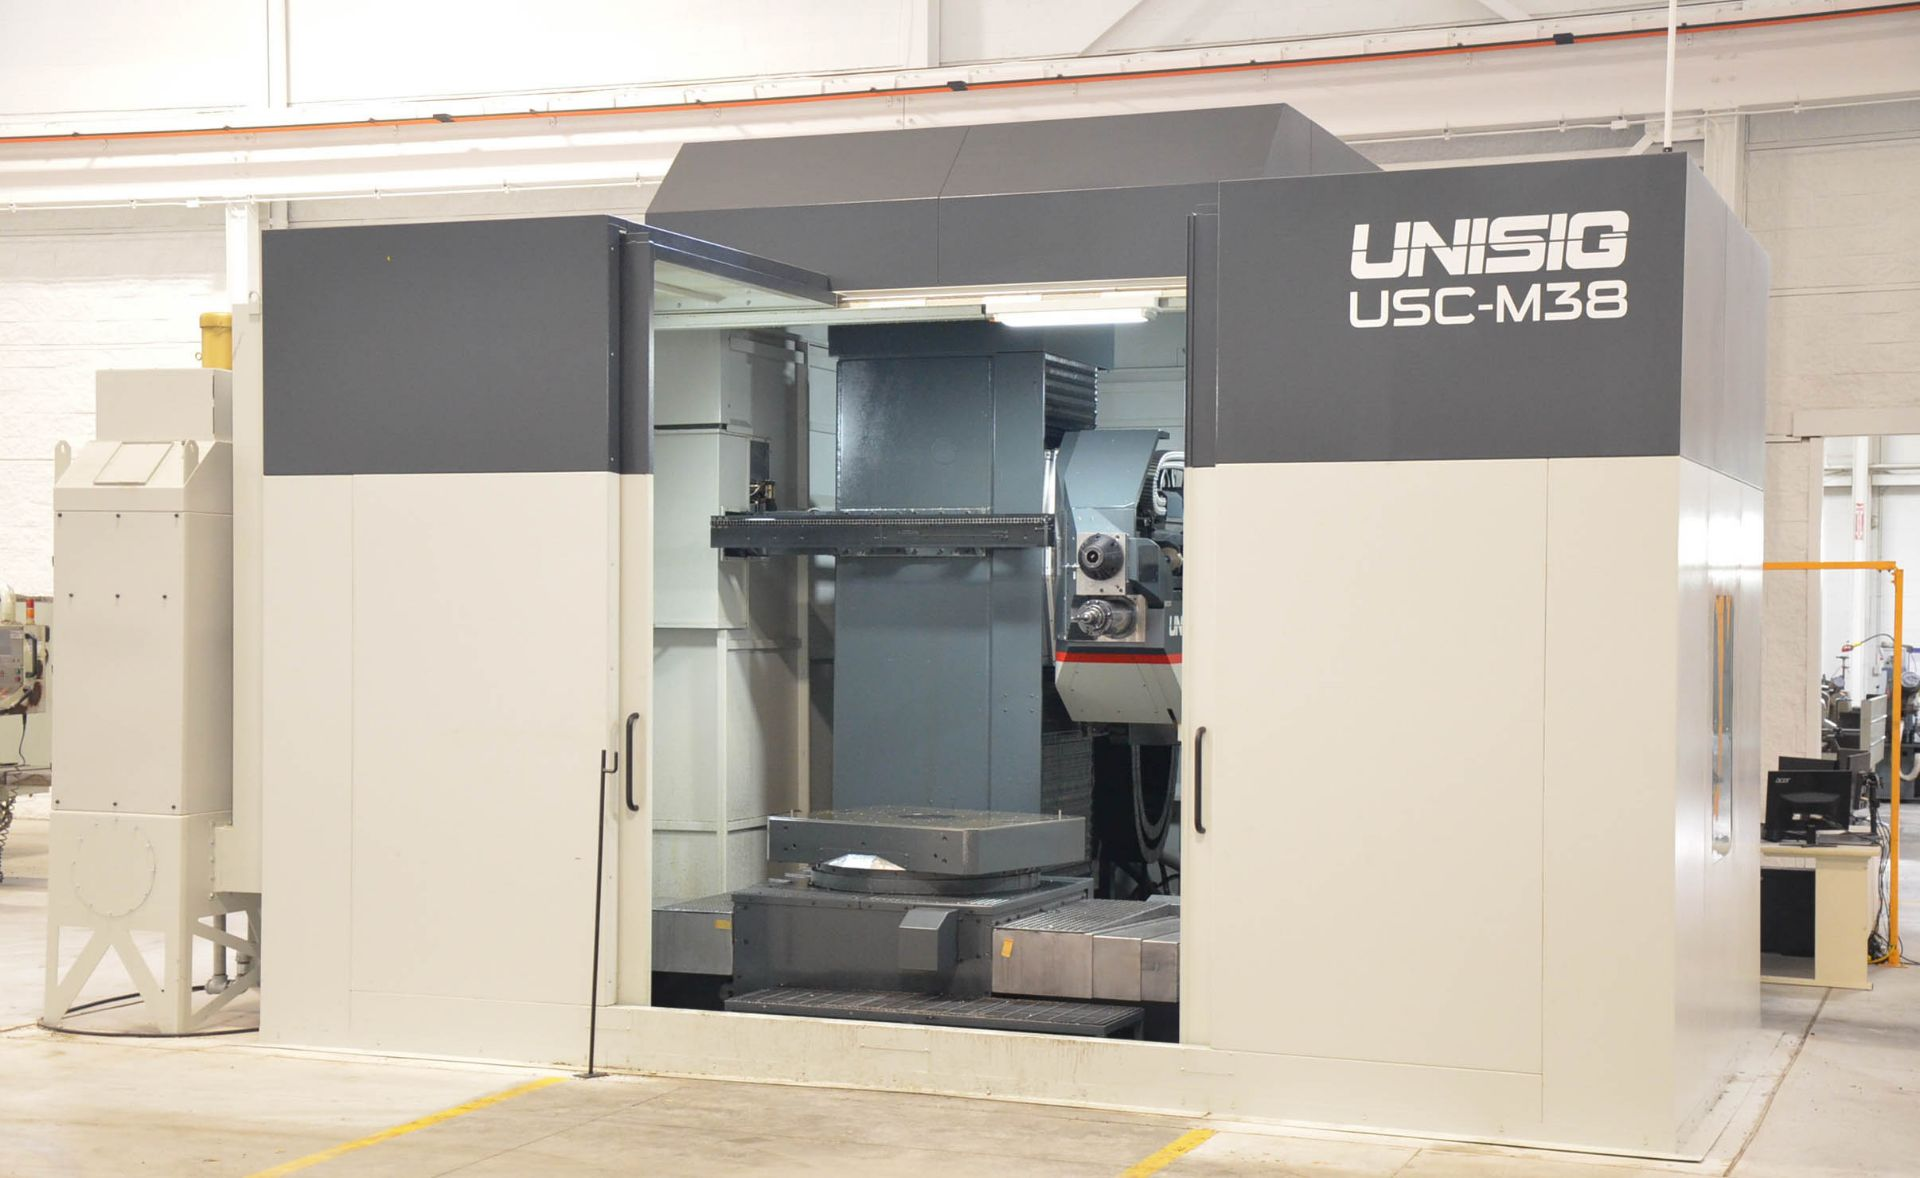 UNISIG (2020) USC-M38 5-AXIS COMBINATION CNC GUN DRILLING AND MILLING MACHINE WITH HEIDENHAIN ITNC - Image 4 of 17